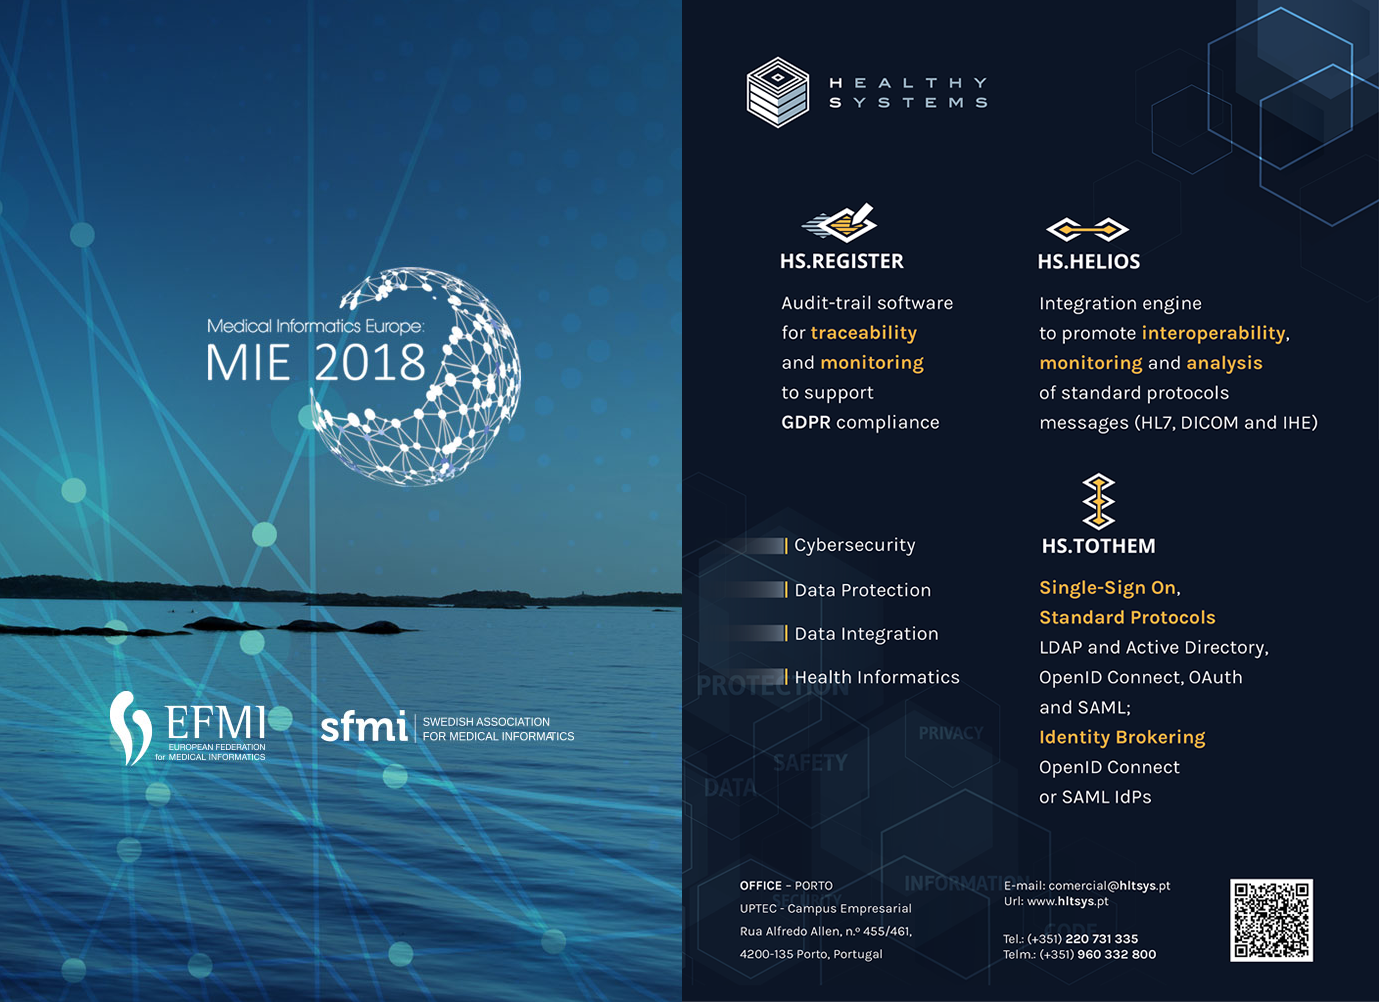 HealthySystems participated at MIE2018